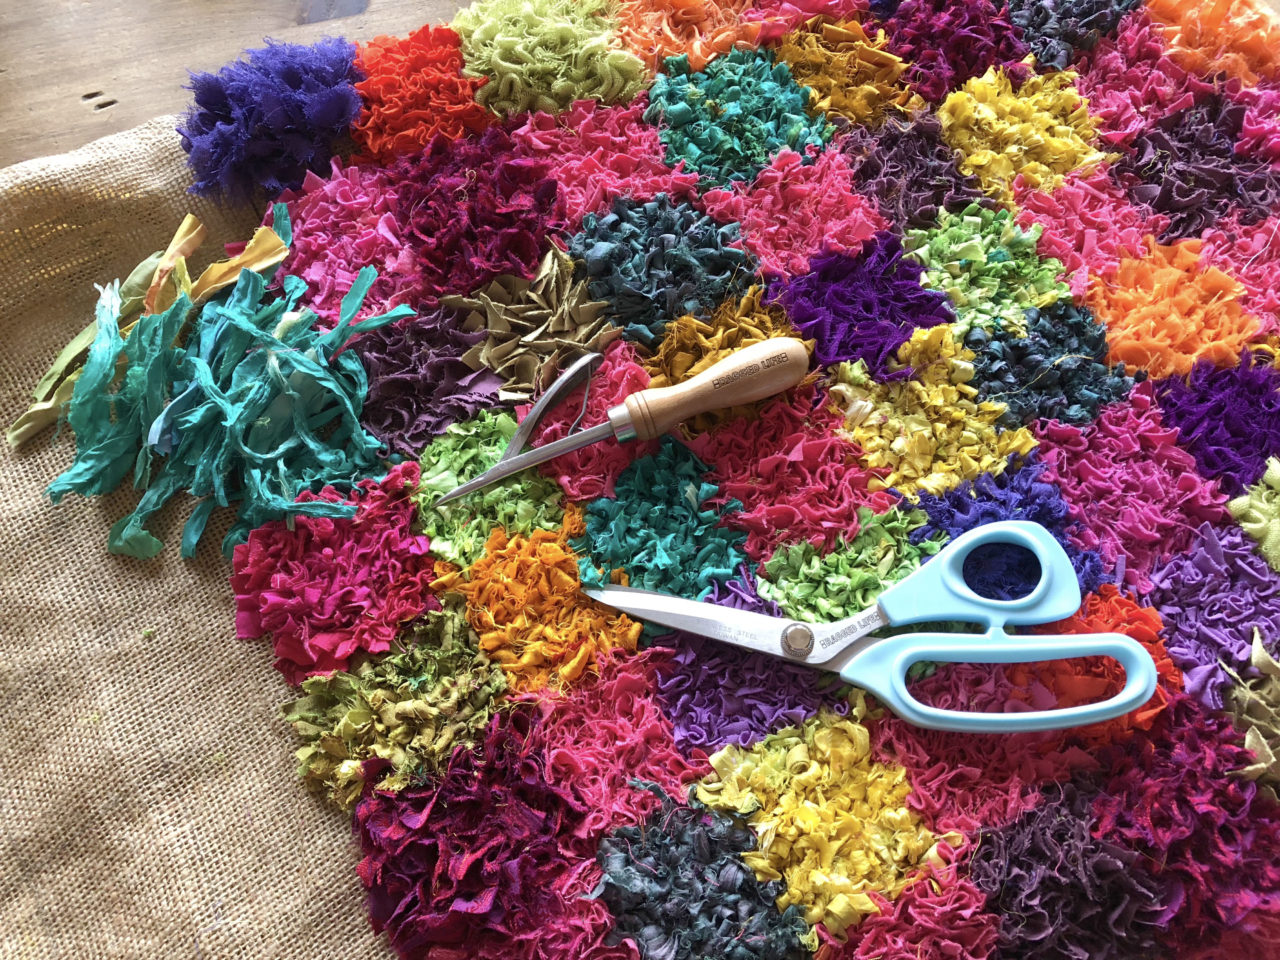 Sari Silk Checked Rag Rug in Jewel colours including pink, orange, yellow, blue